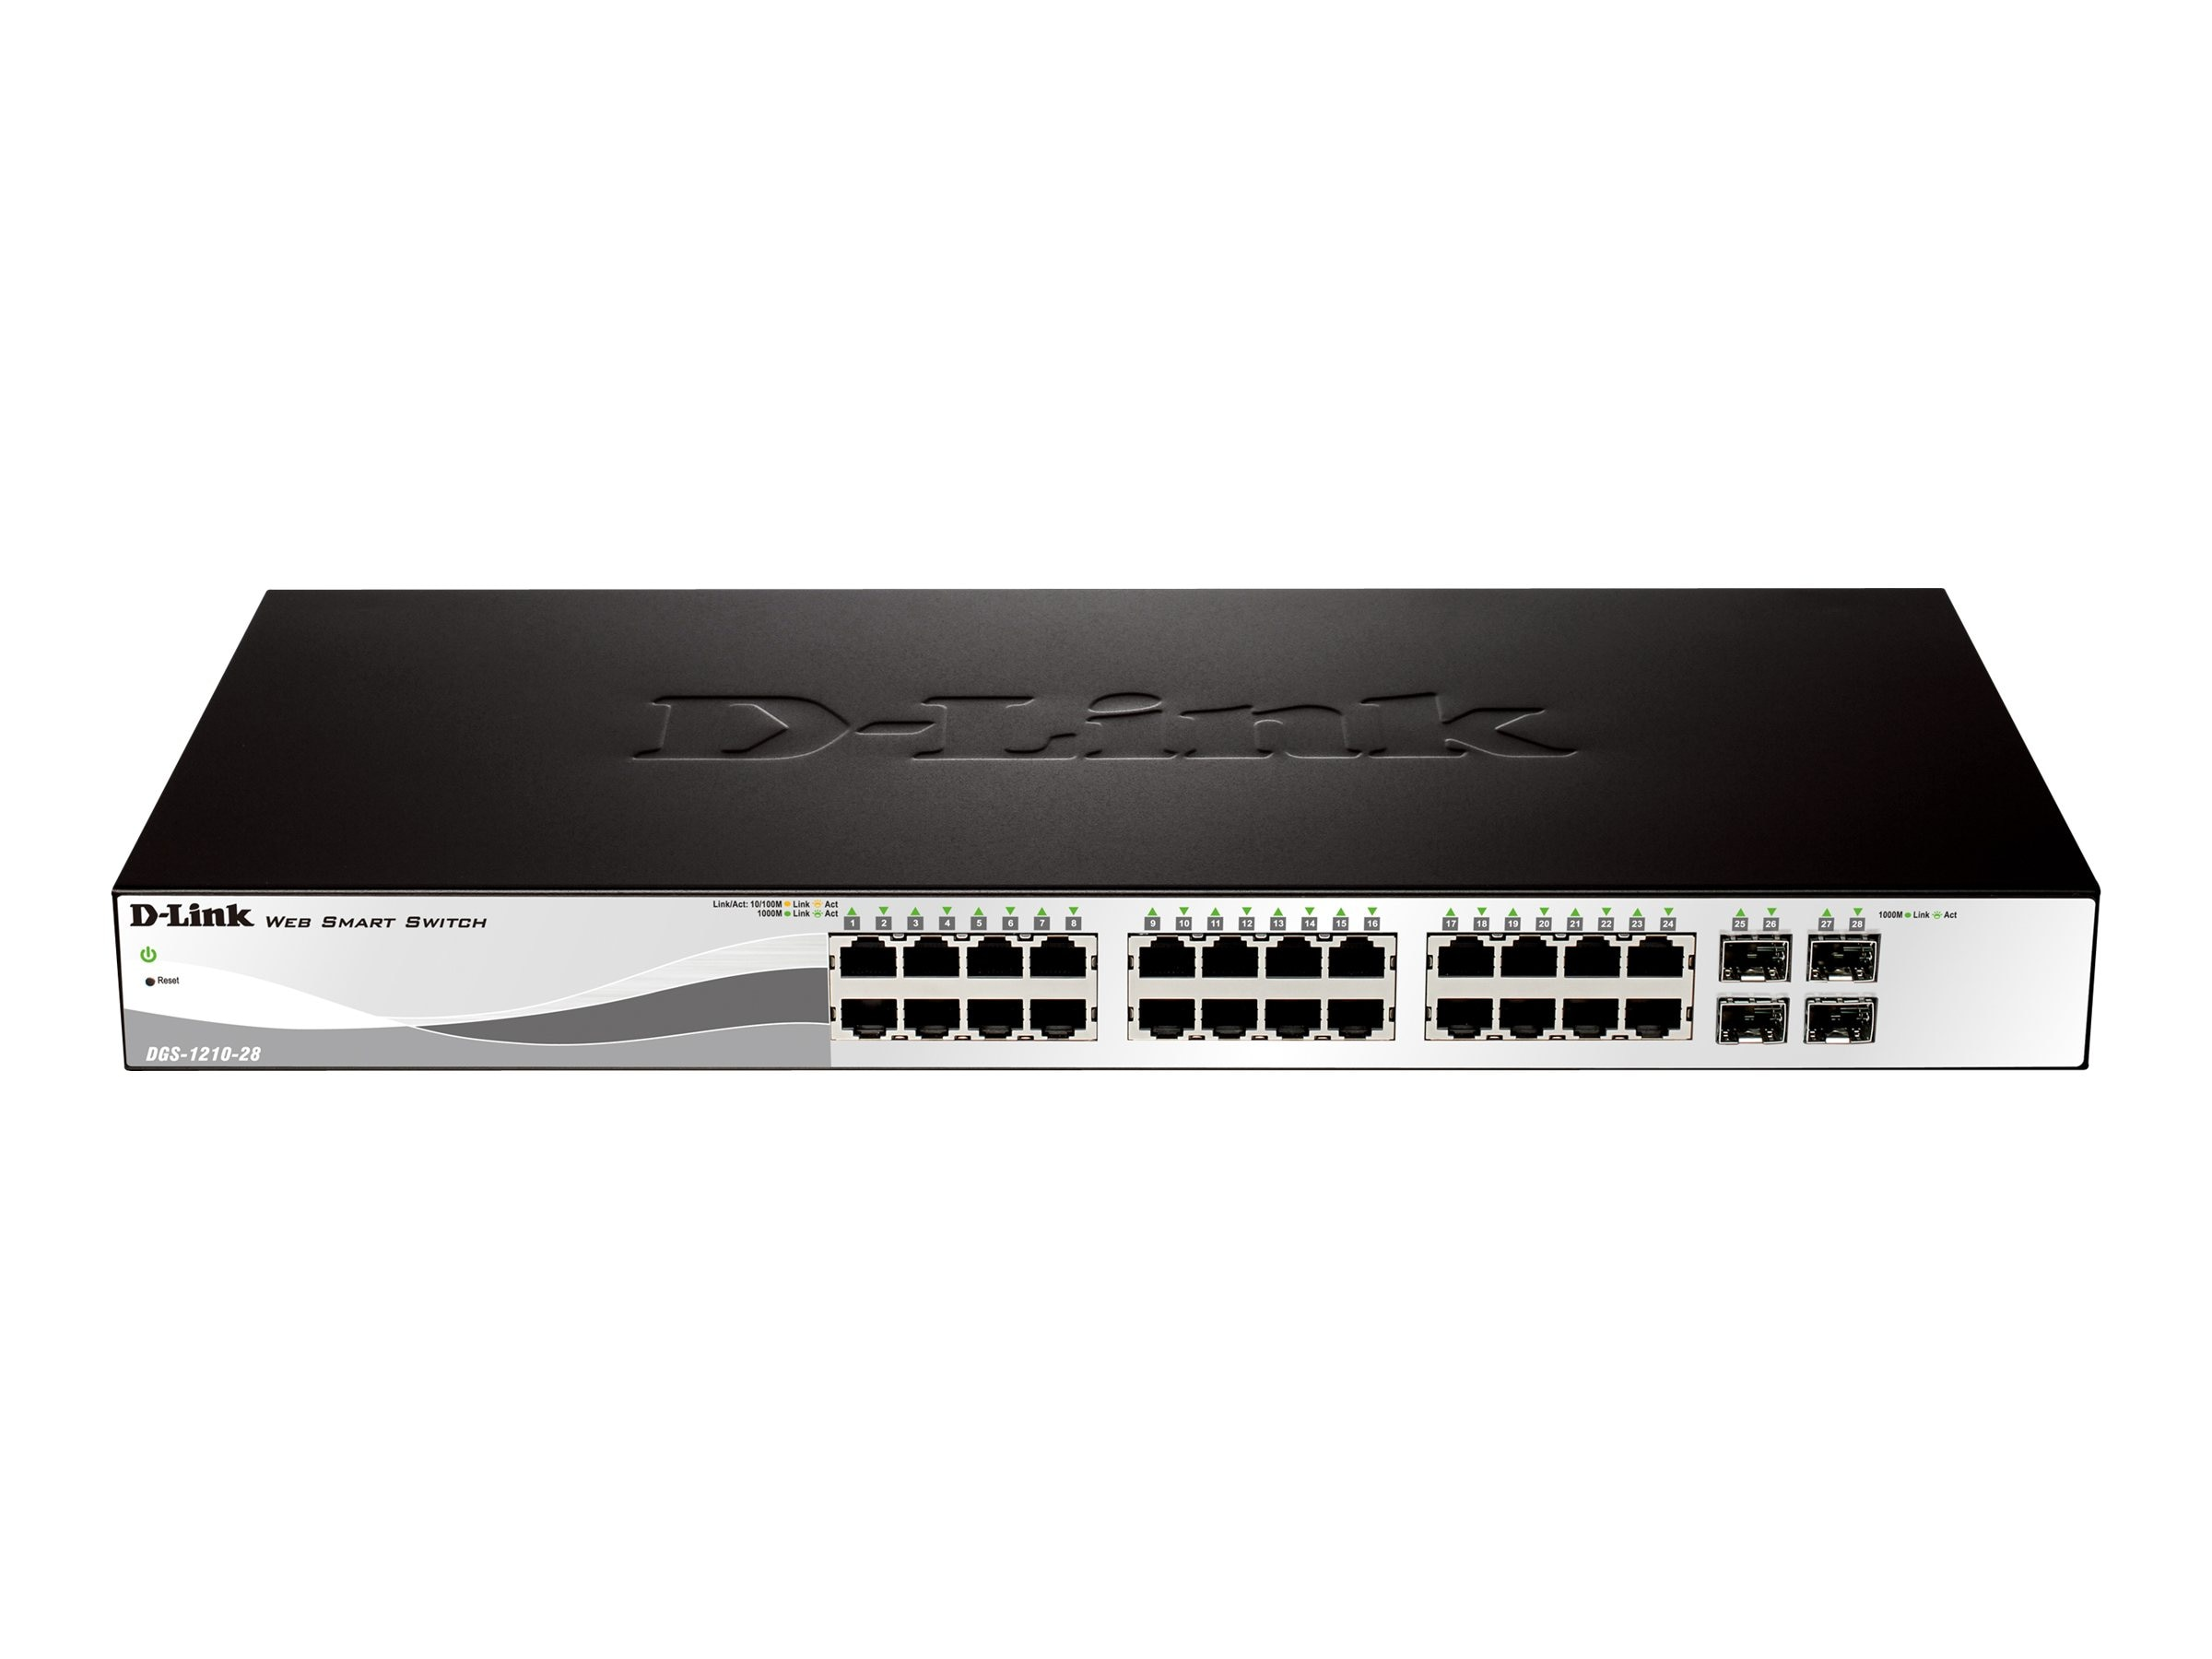 D-Link 24 Port Gig Web Smart Switch, DGS-1210-28, 15949972, Network Switches